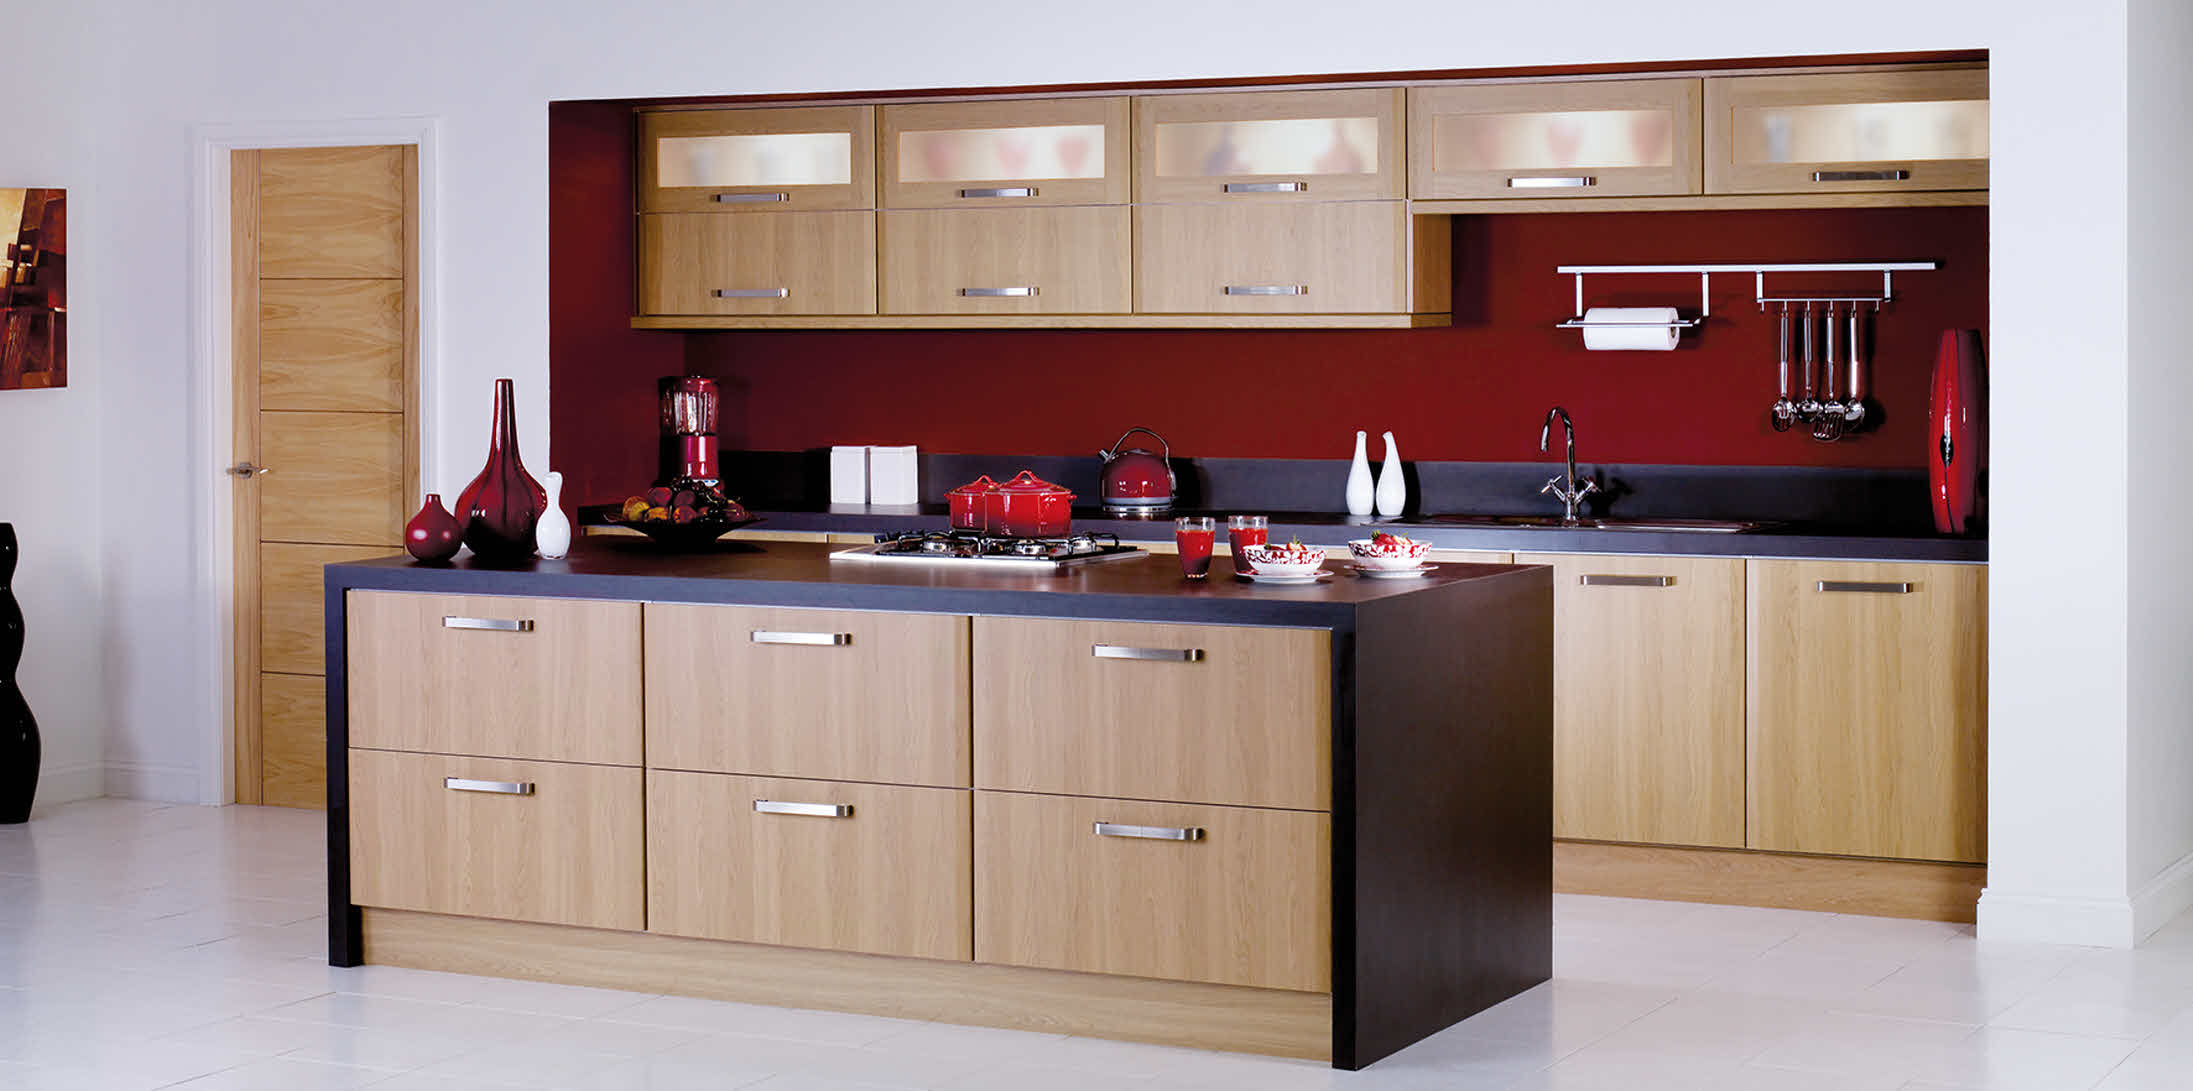 India 39 s best modular kitchen company for Indian style kitchen design